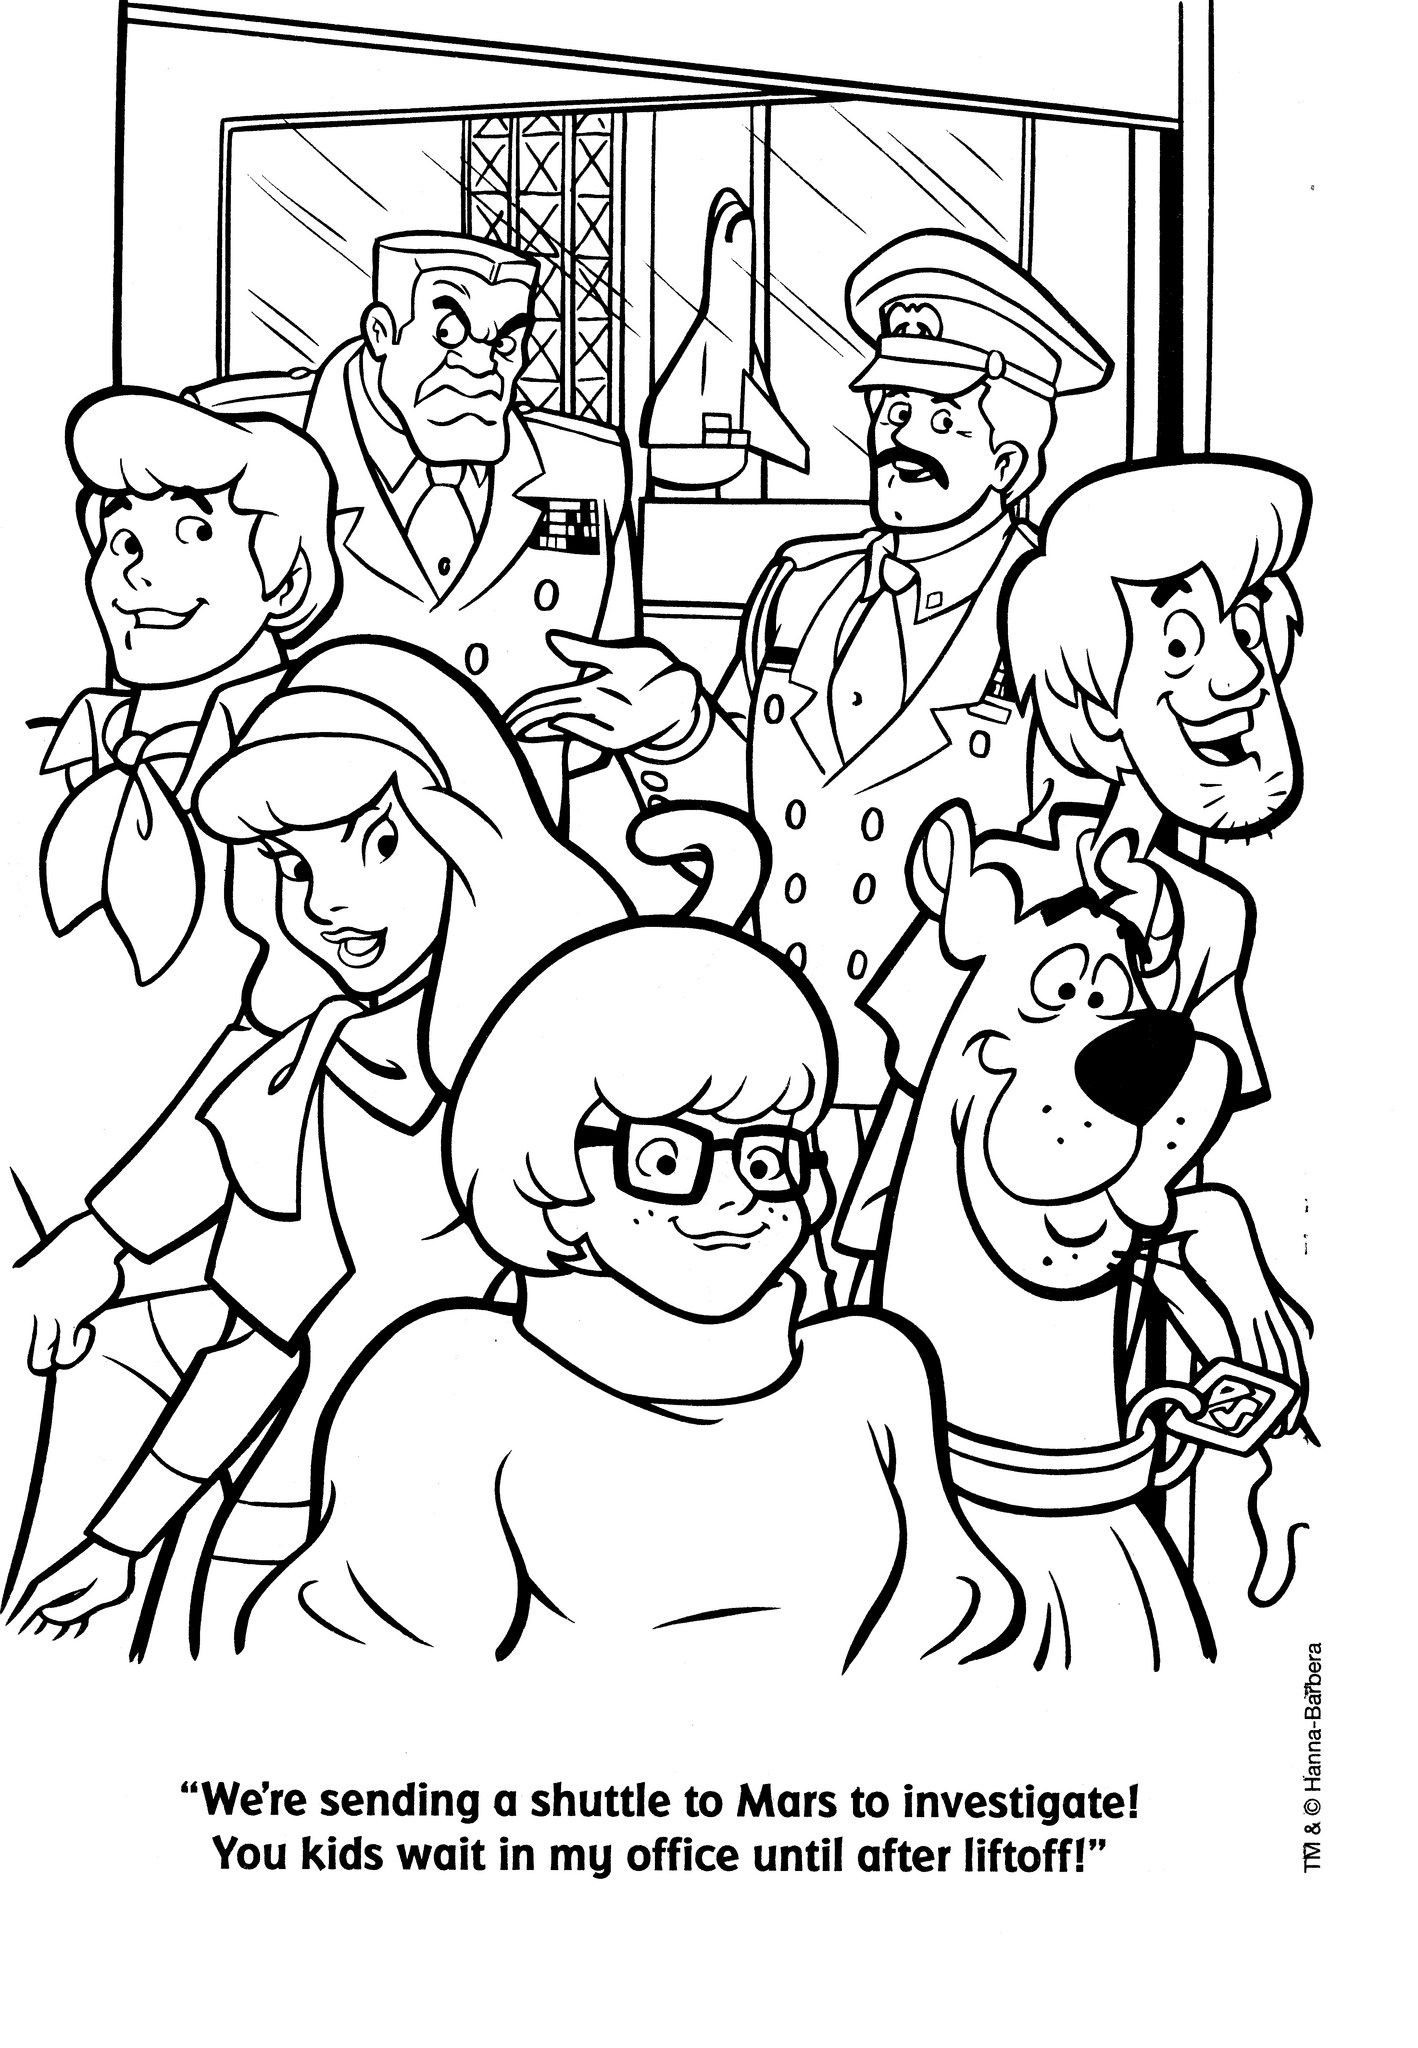 Scooby Doo 36 Scooby Doo Coloring Pages Monster Coloring Pages Coloring Books